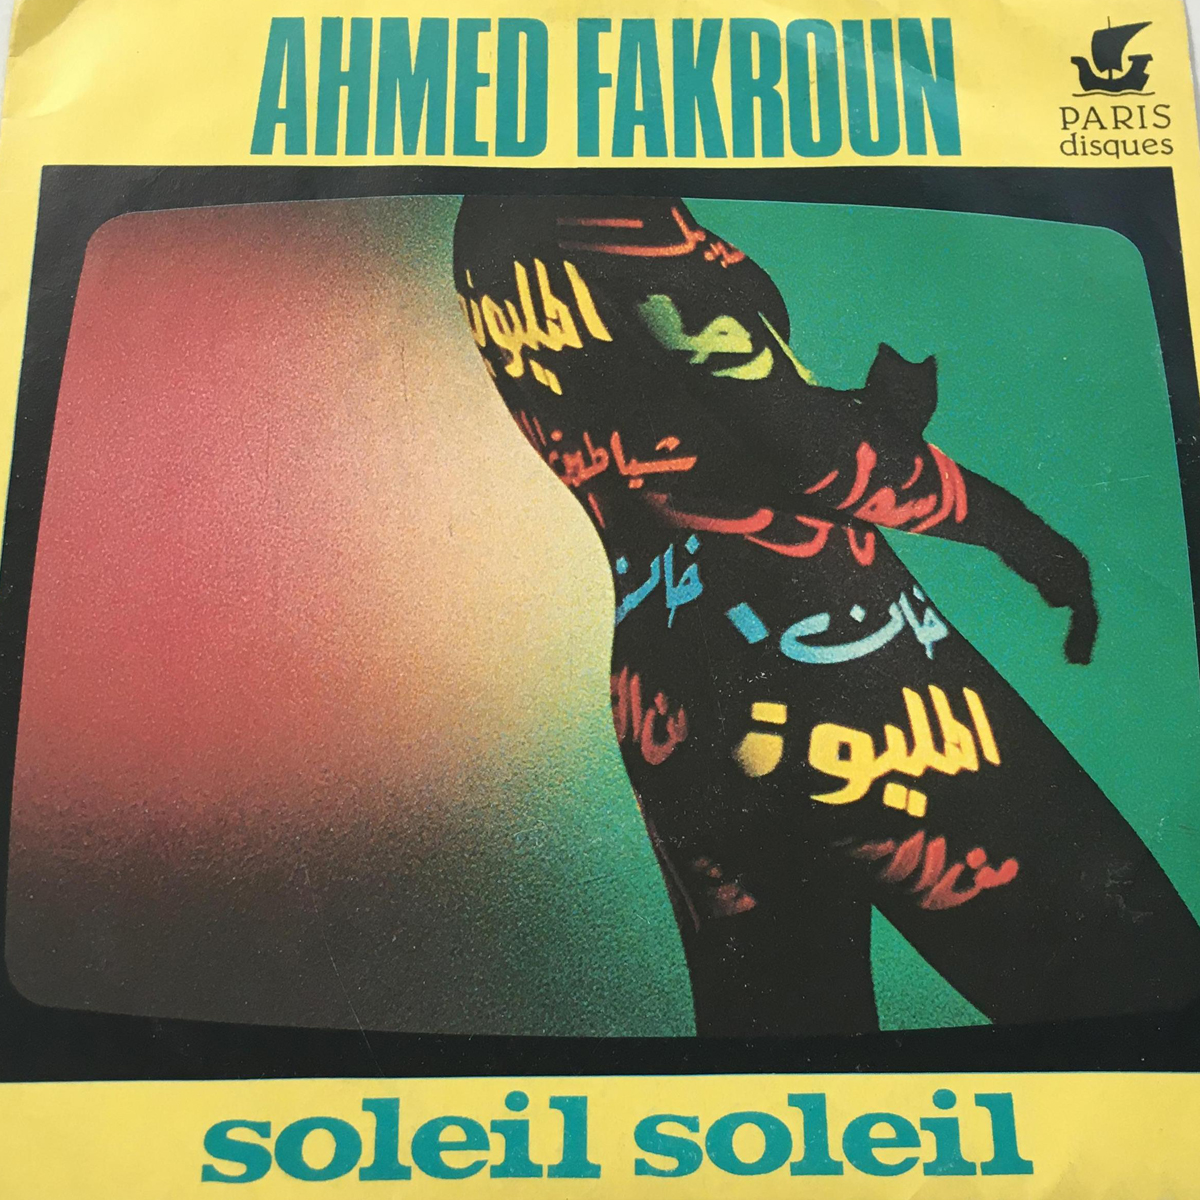 Ahmed Fakroun: rediscovered pioneer in modern Arabic music, live